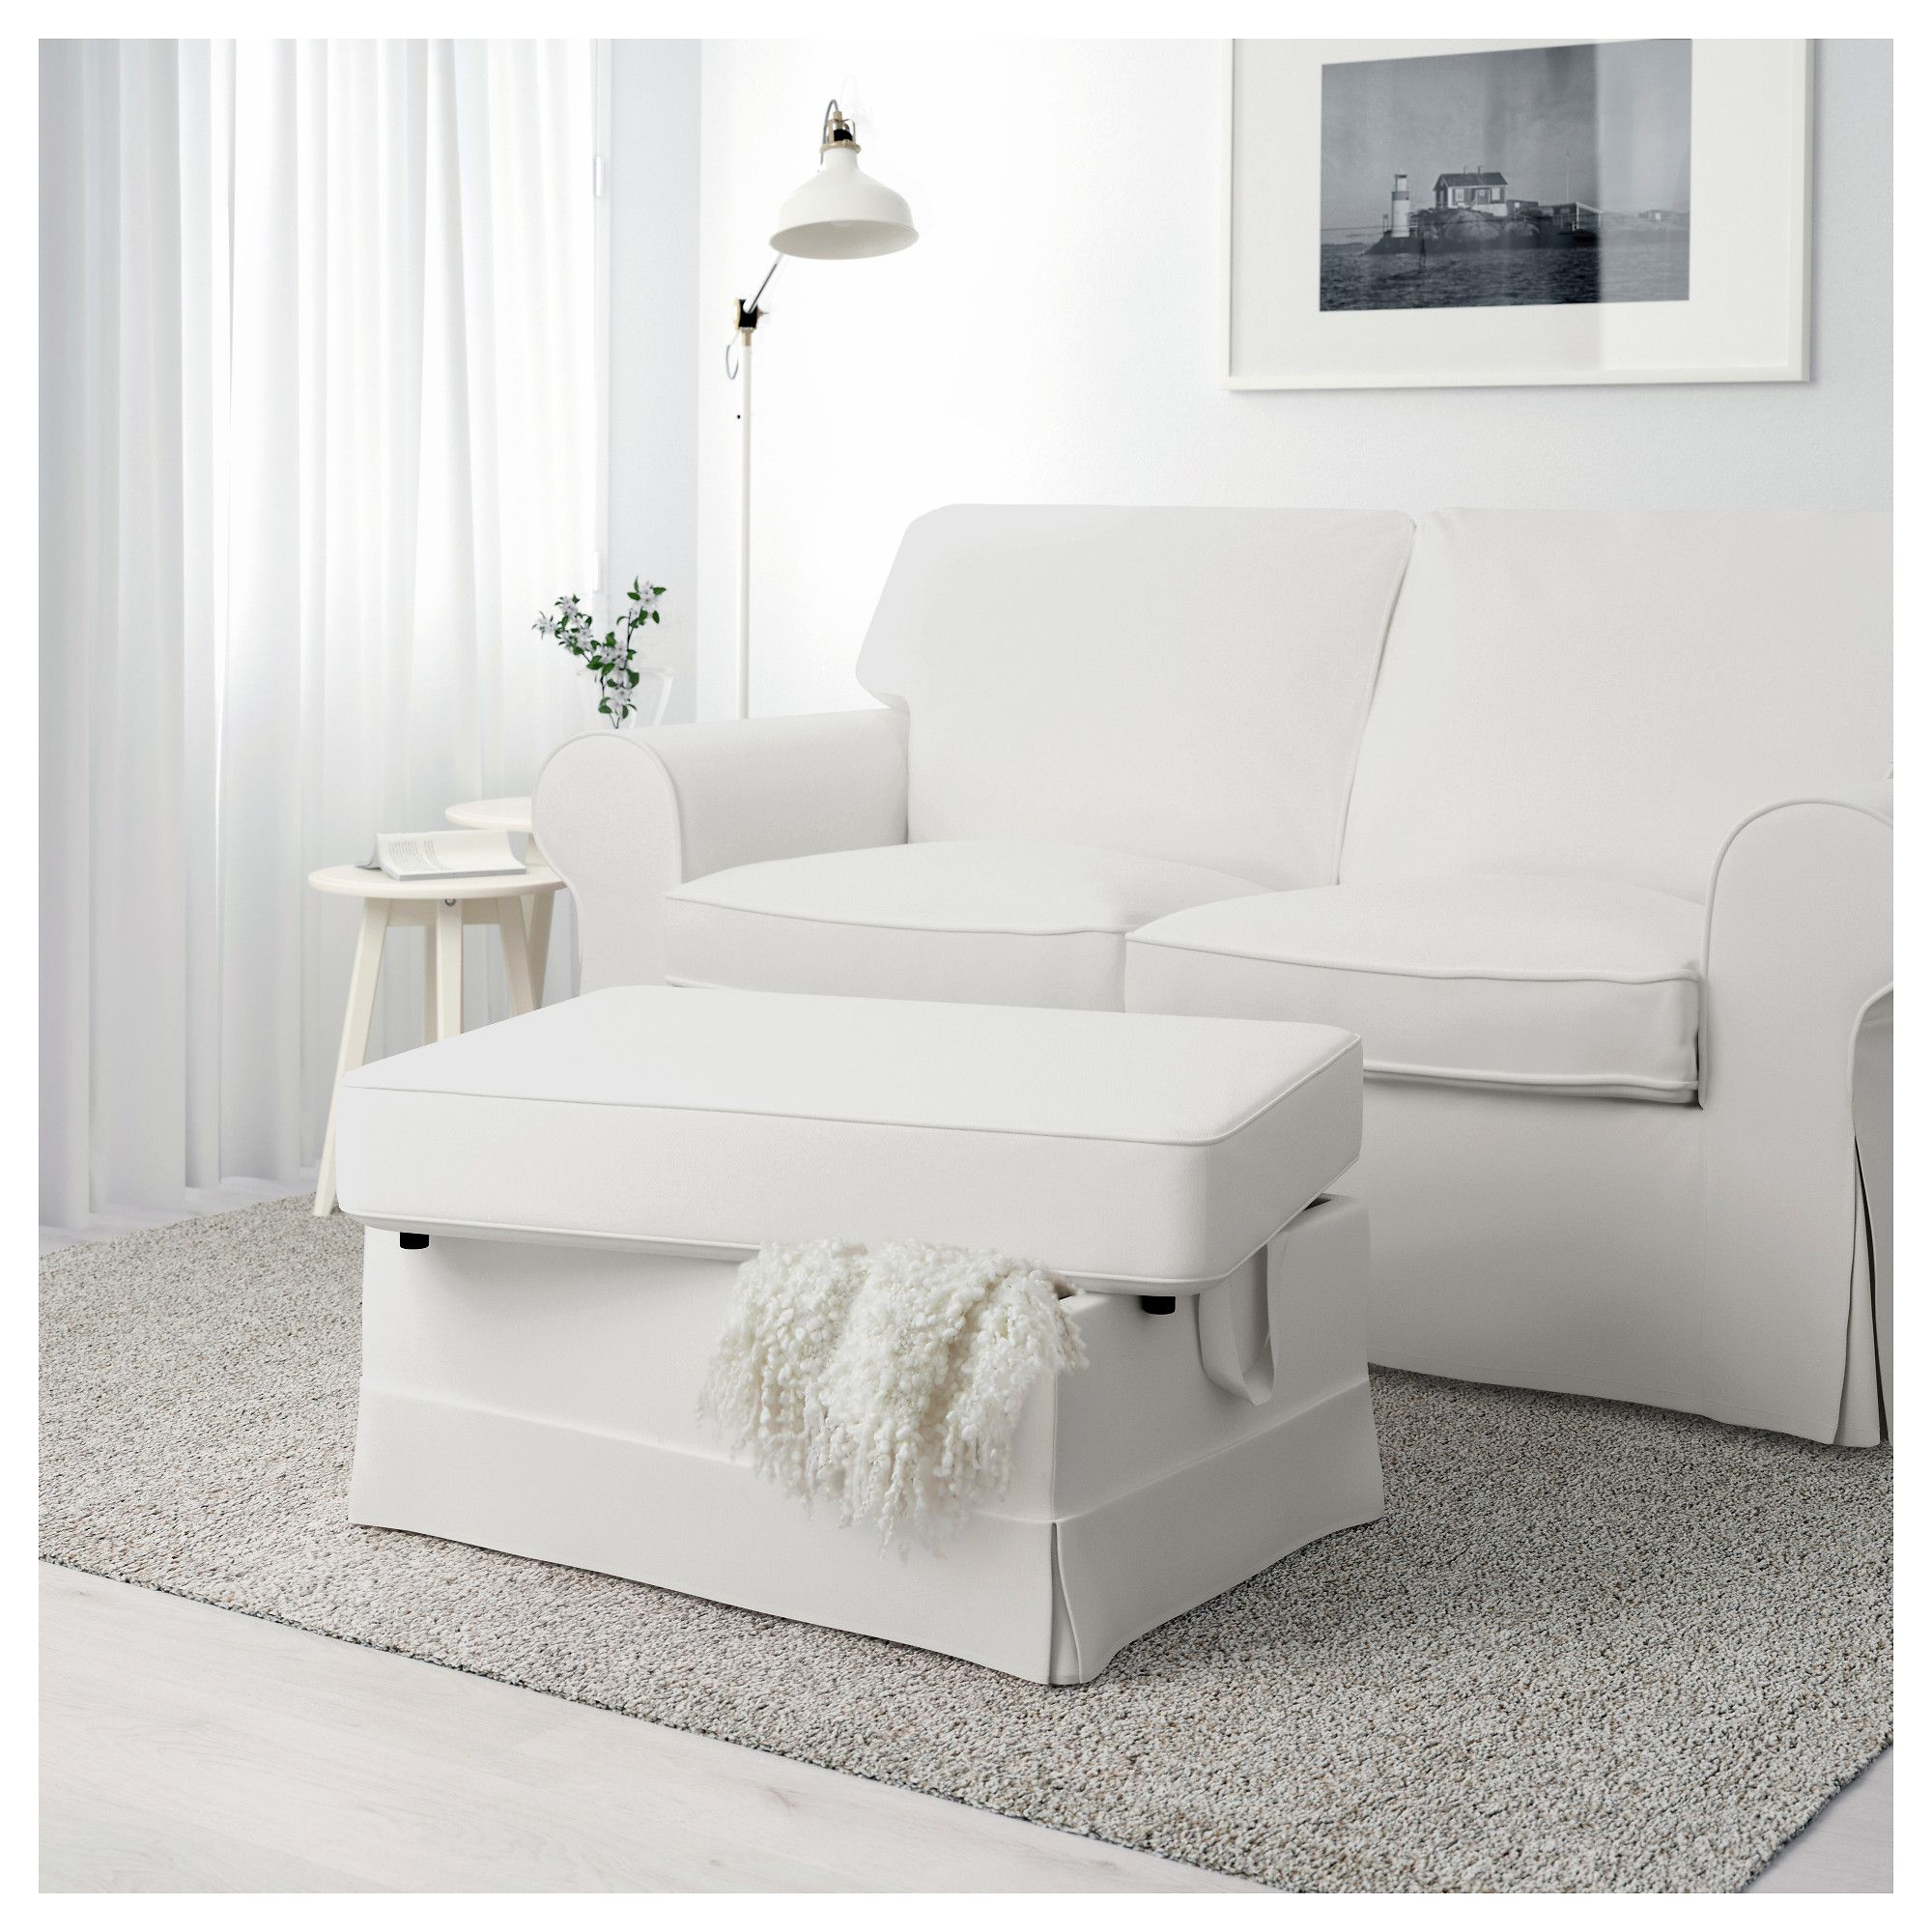 Ektorp Sofa Vittaryd White Ikea Ektorp Footstool Vittaryd White In 2019 Products Ikea